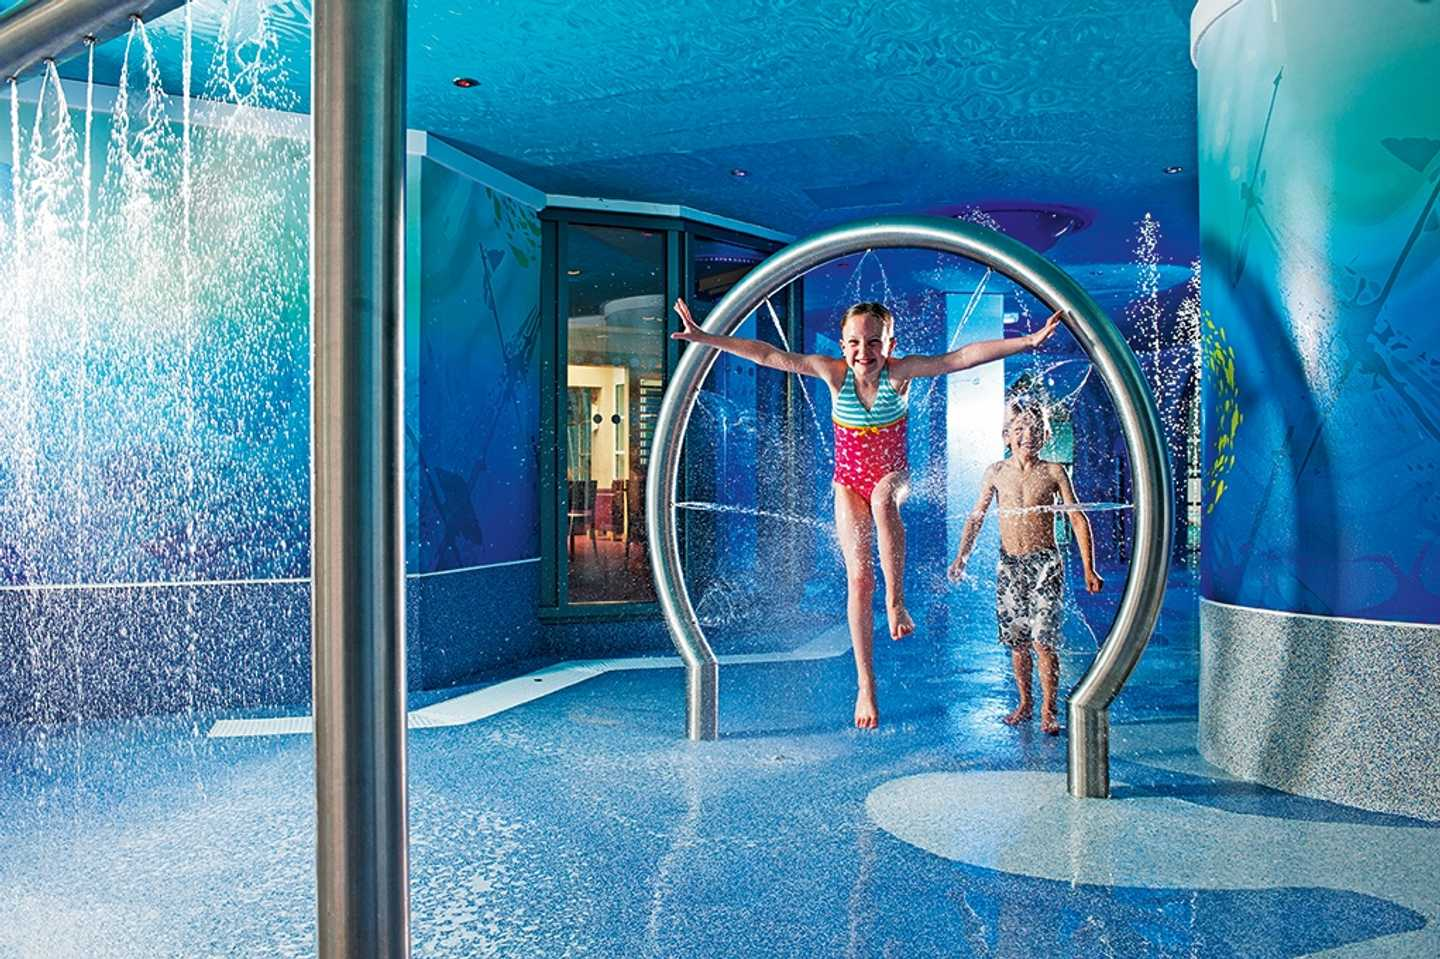 Children playing in the SplashZone grotto